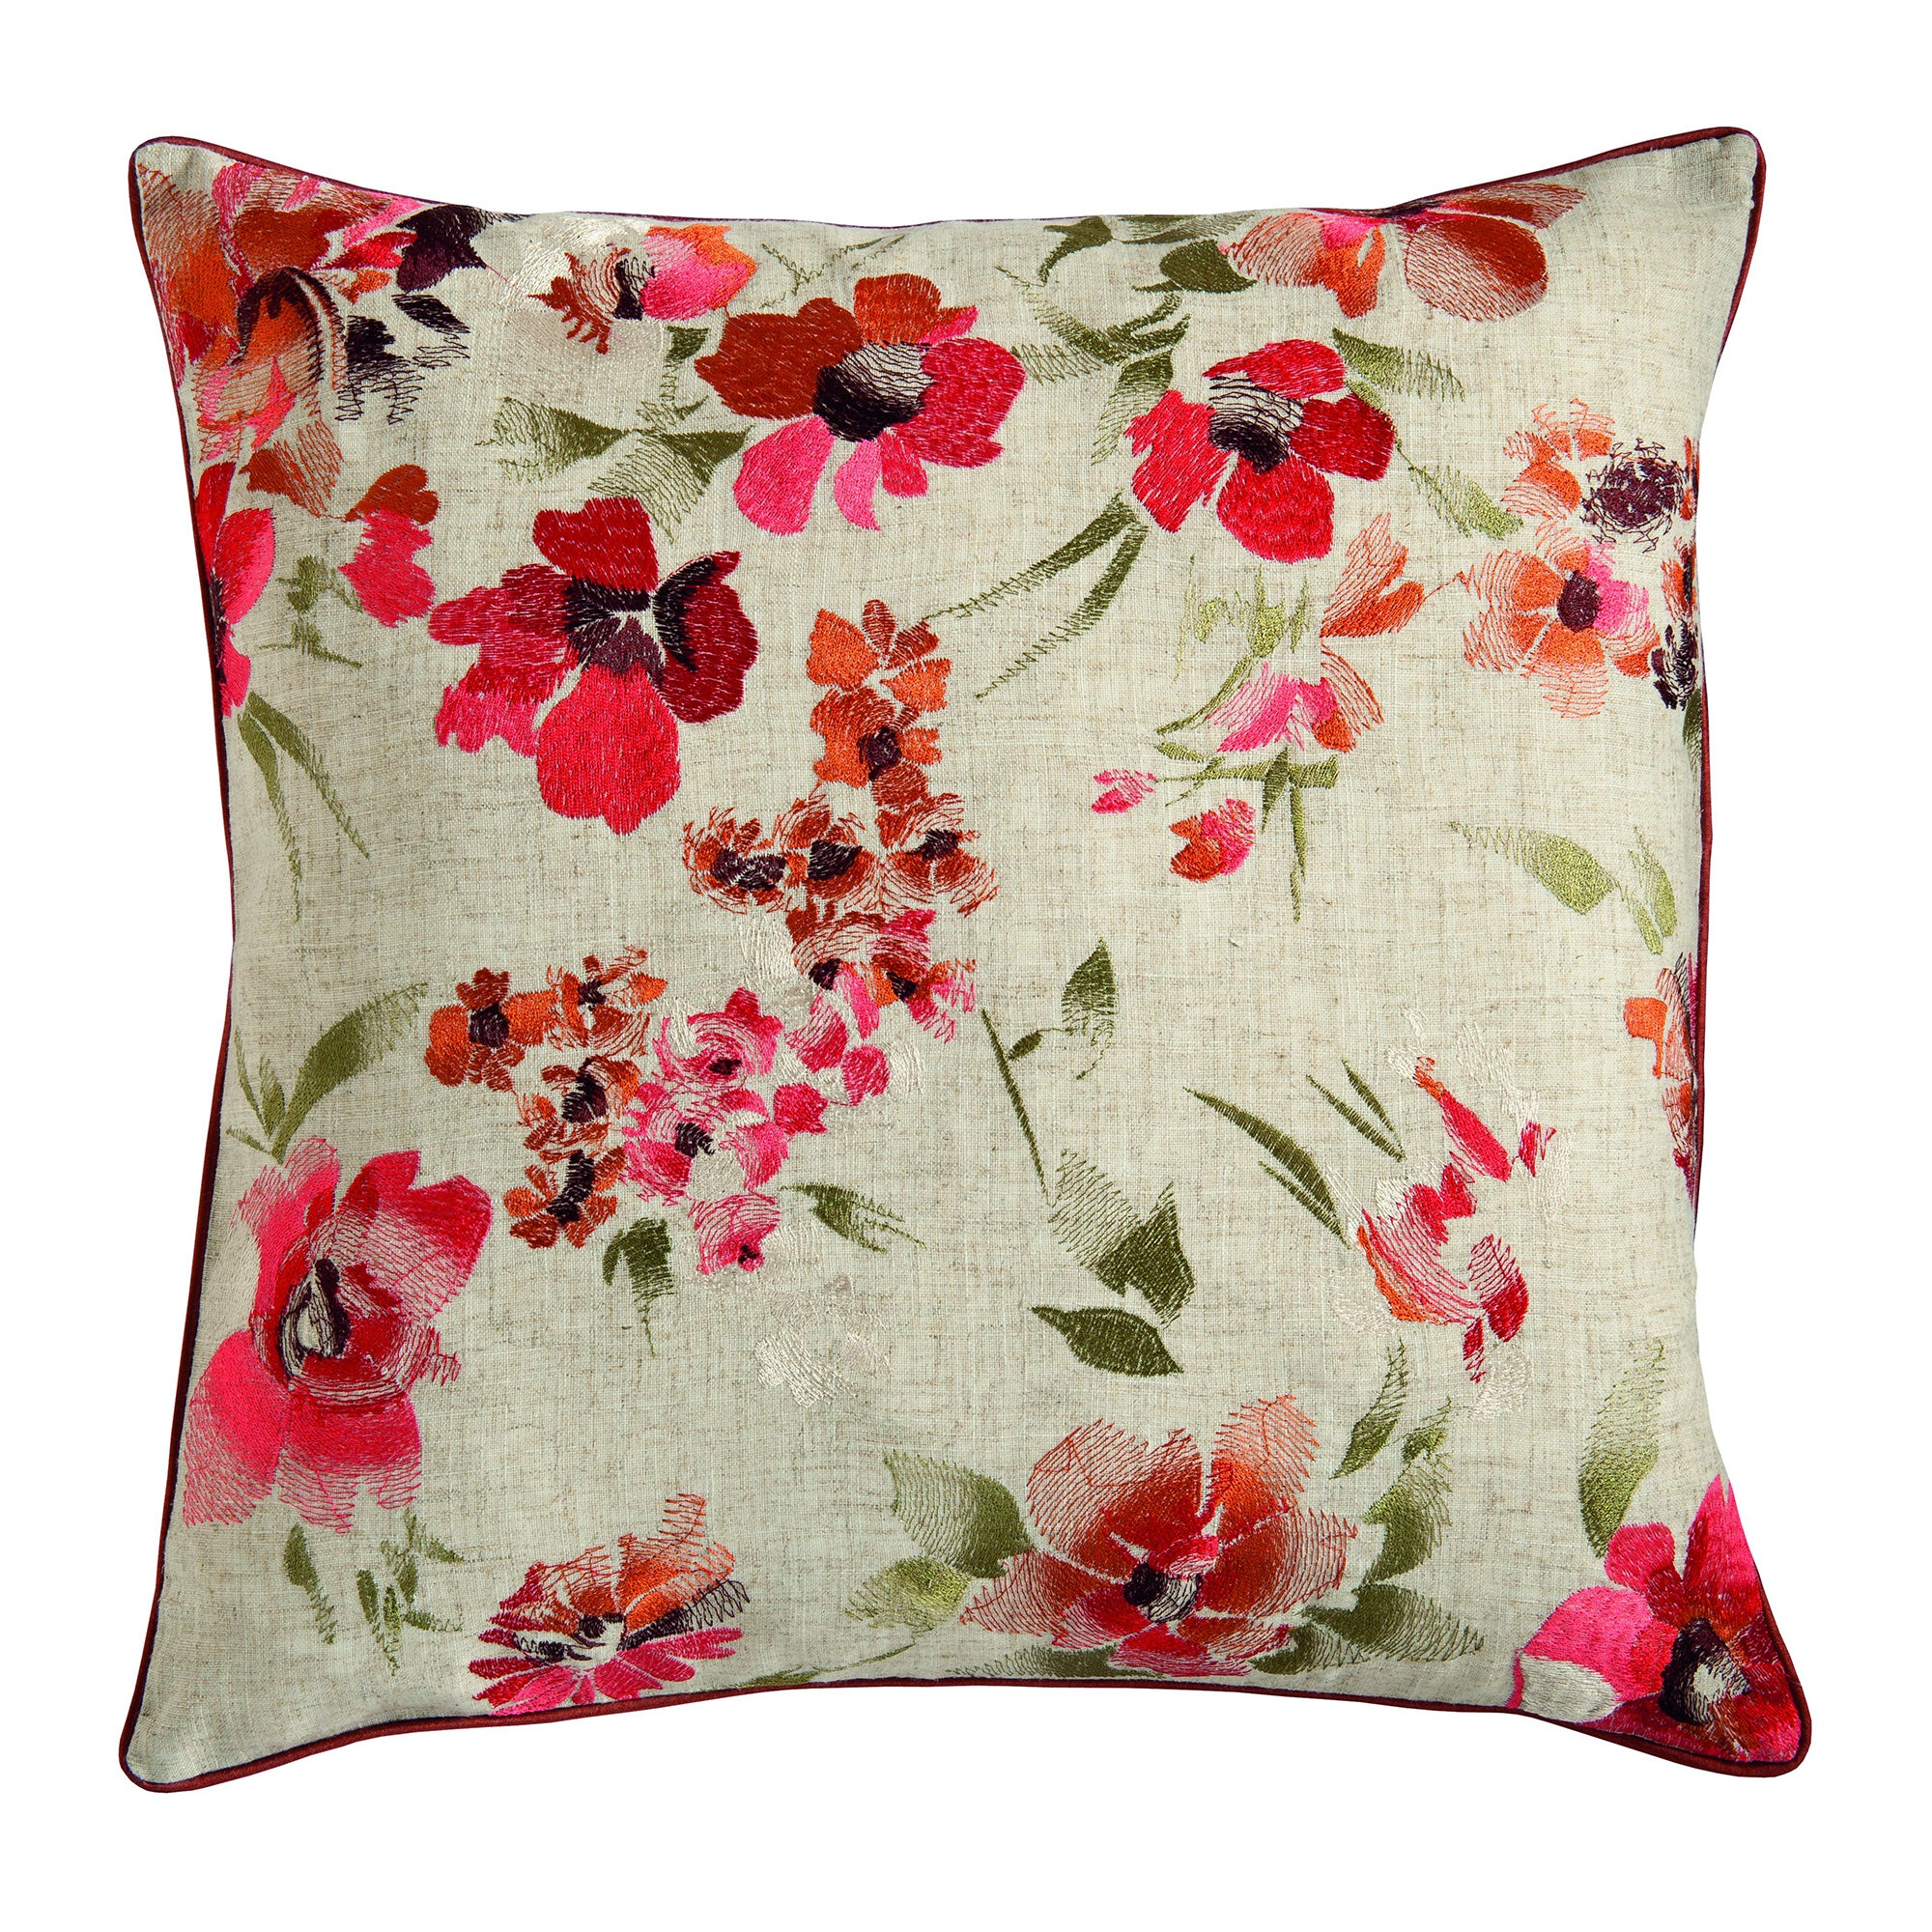 Autumn Floral Cushion